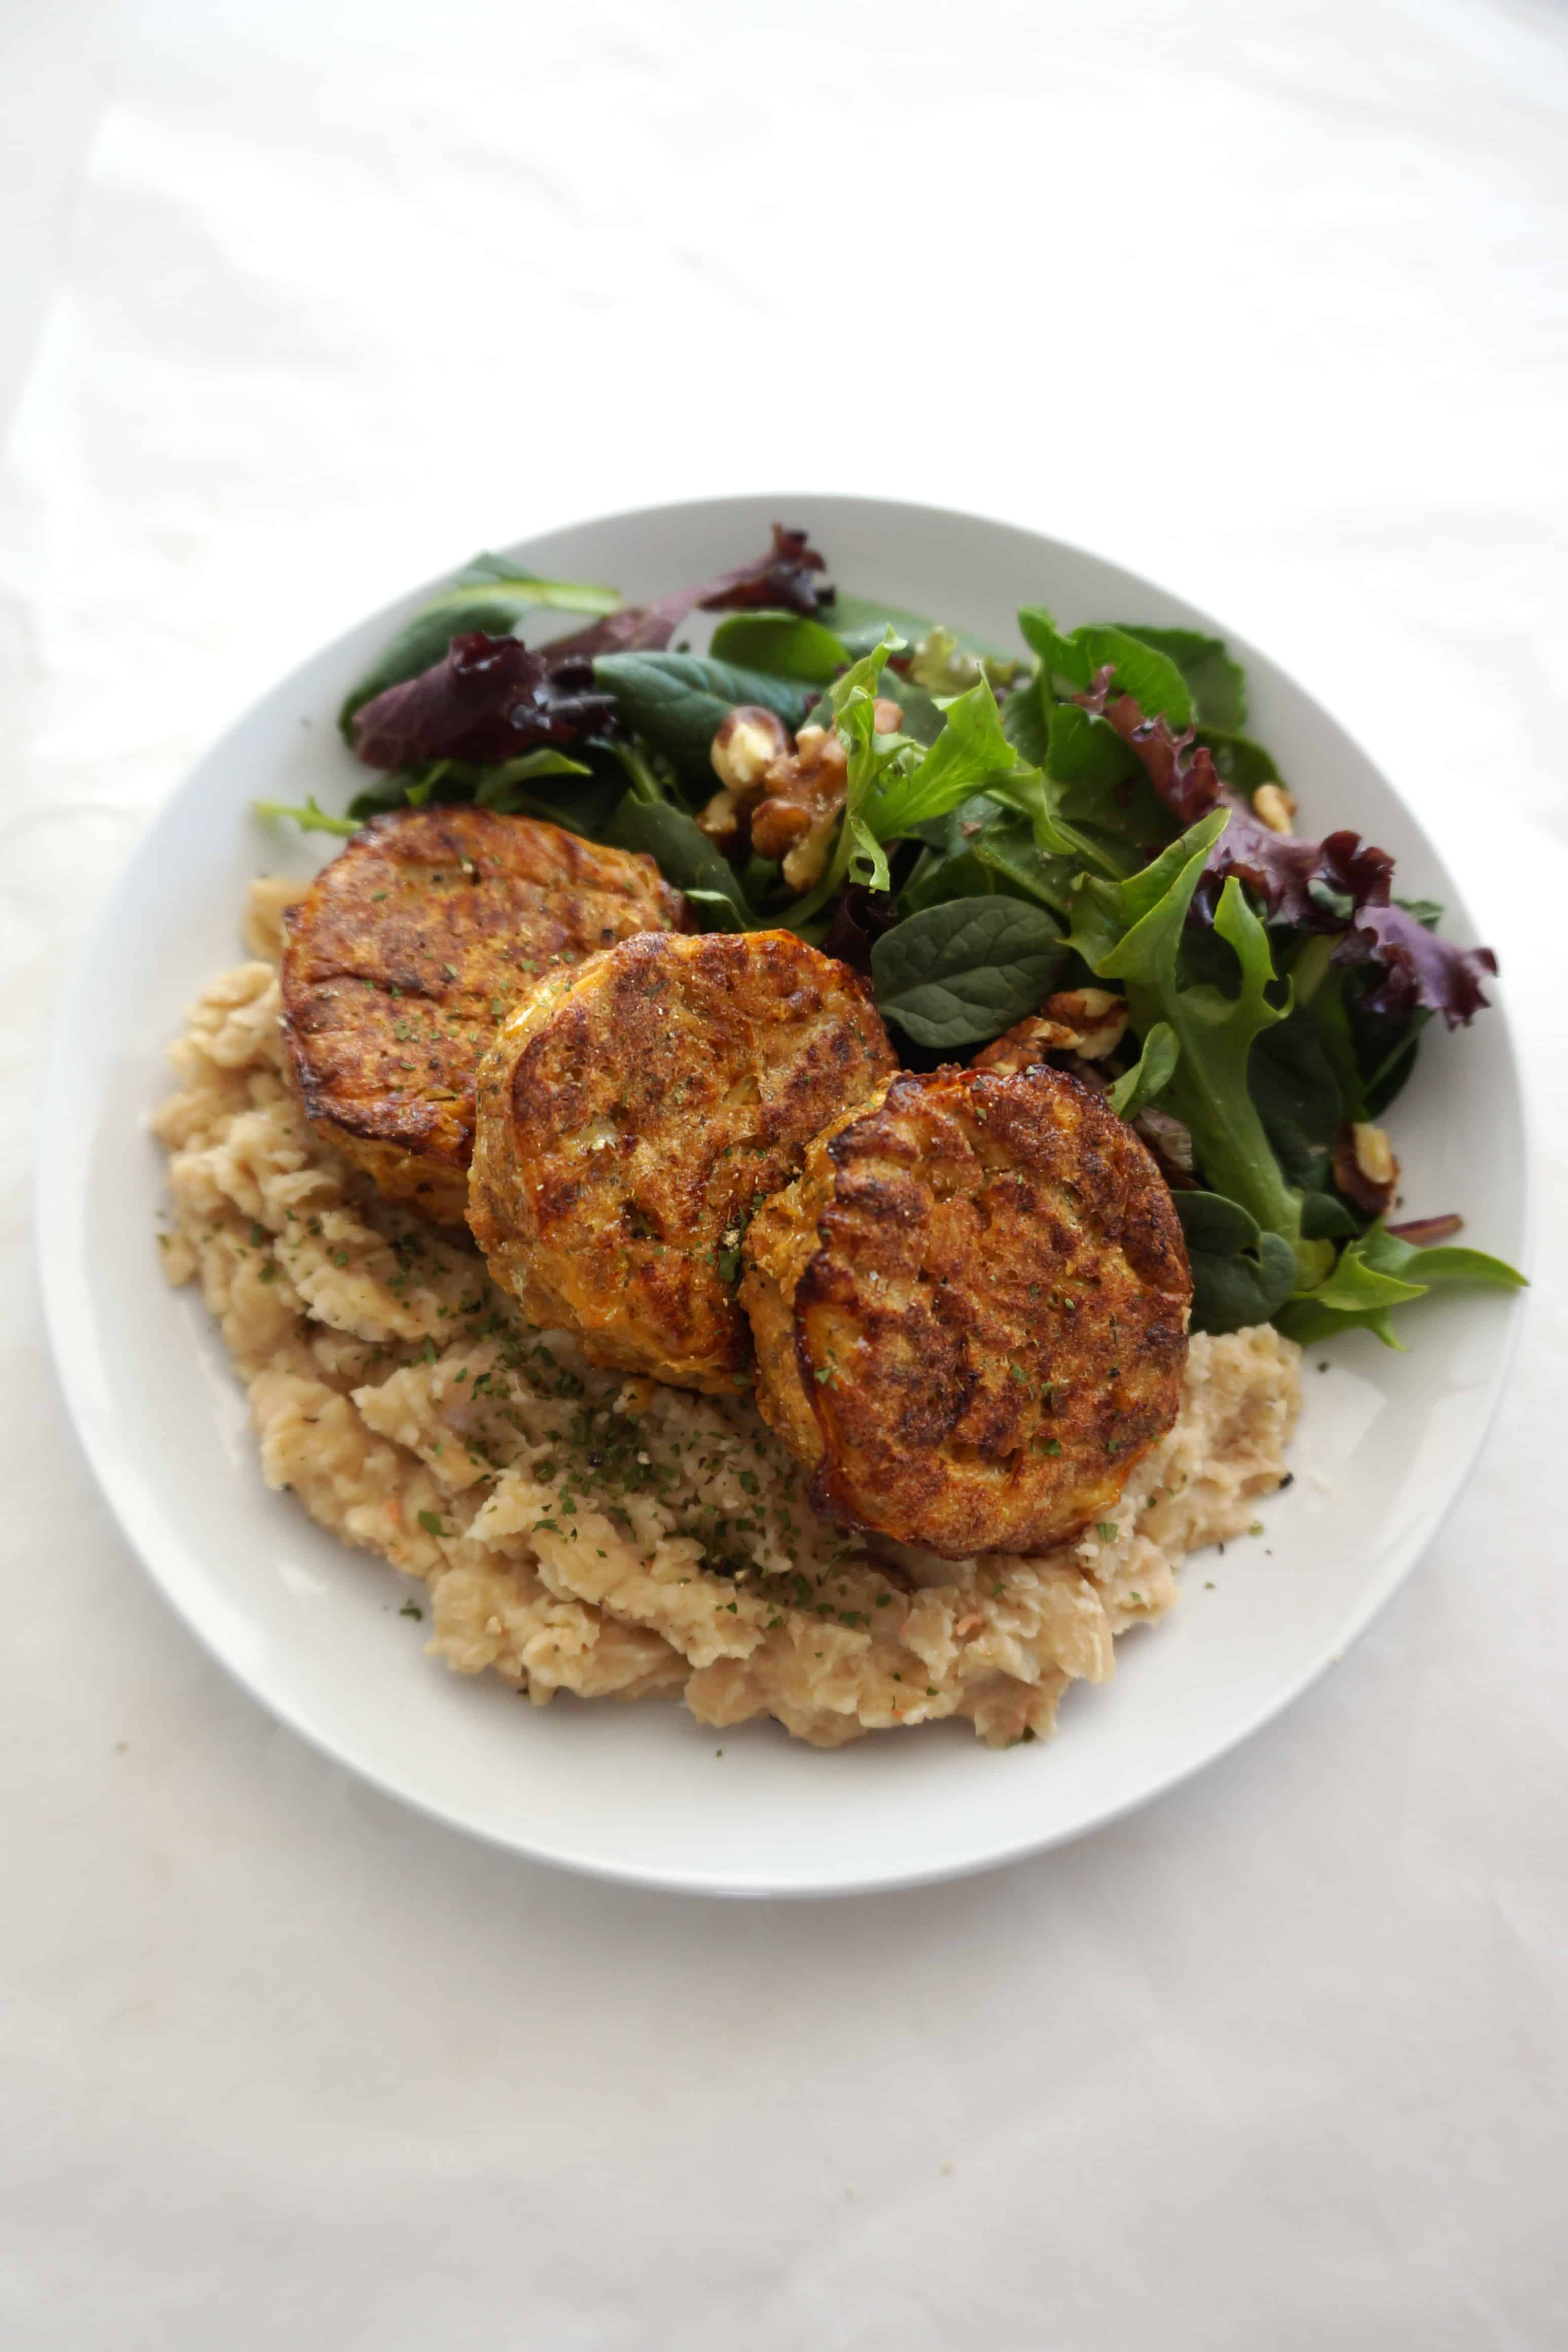 Salmon Patties on a plate with white bean mash and side salad